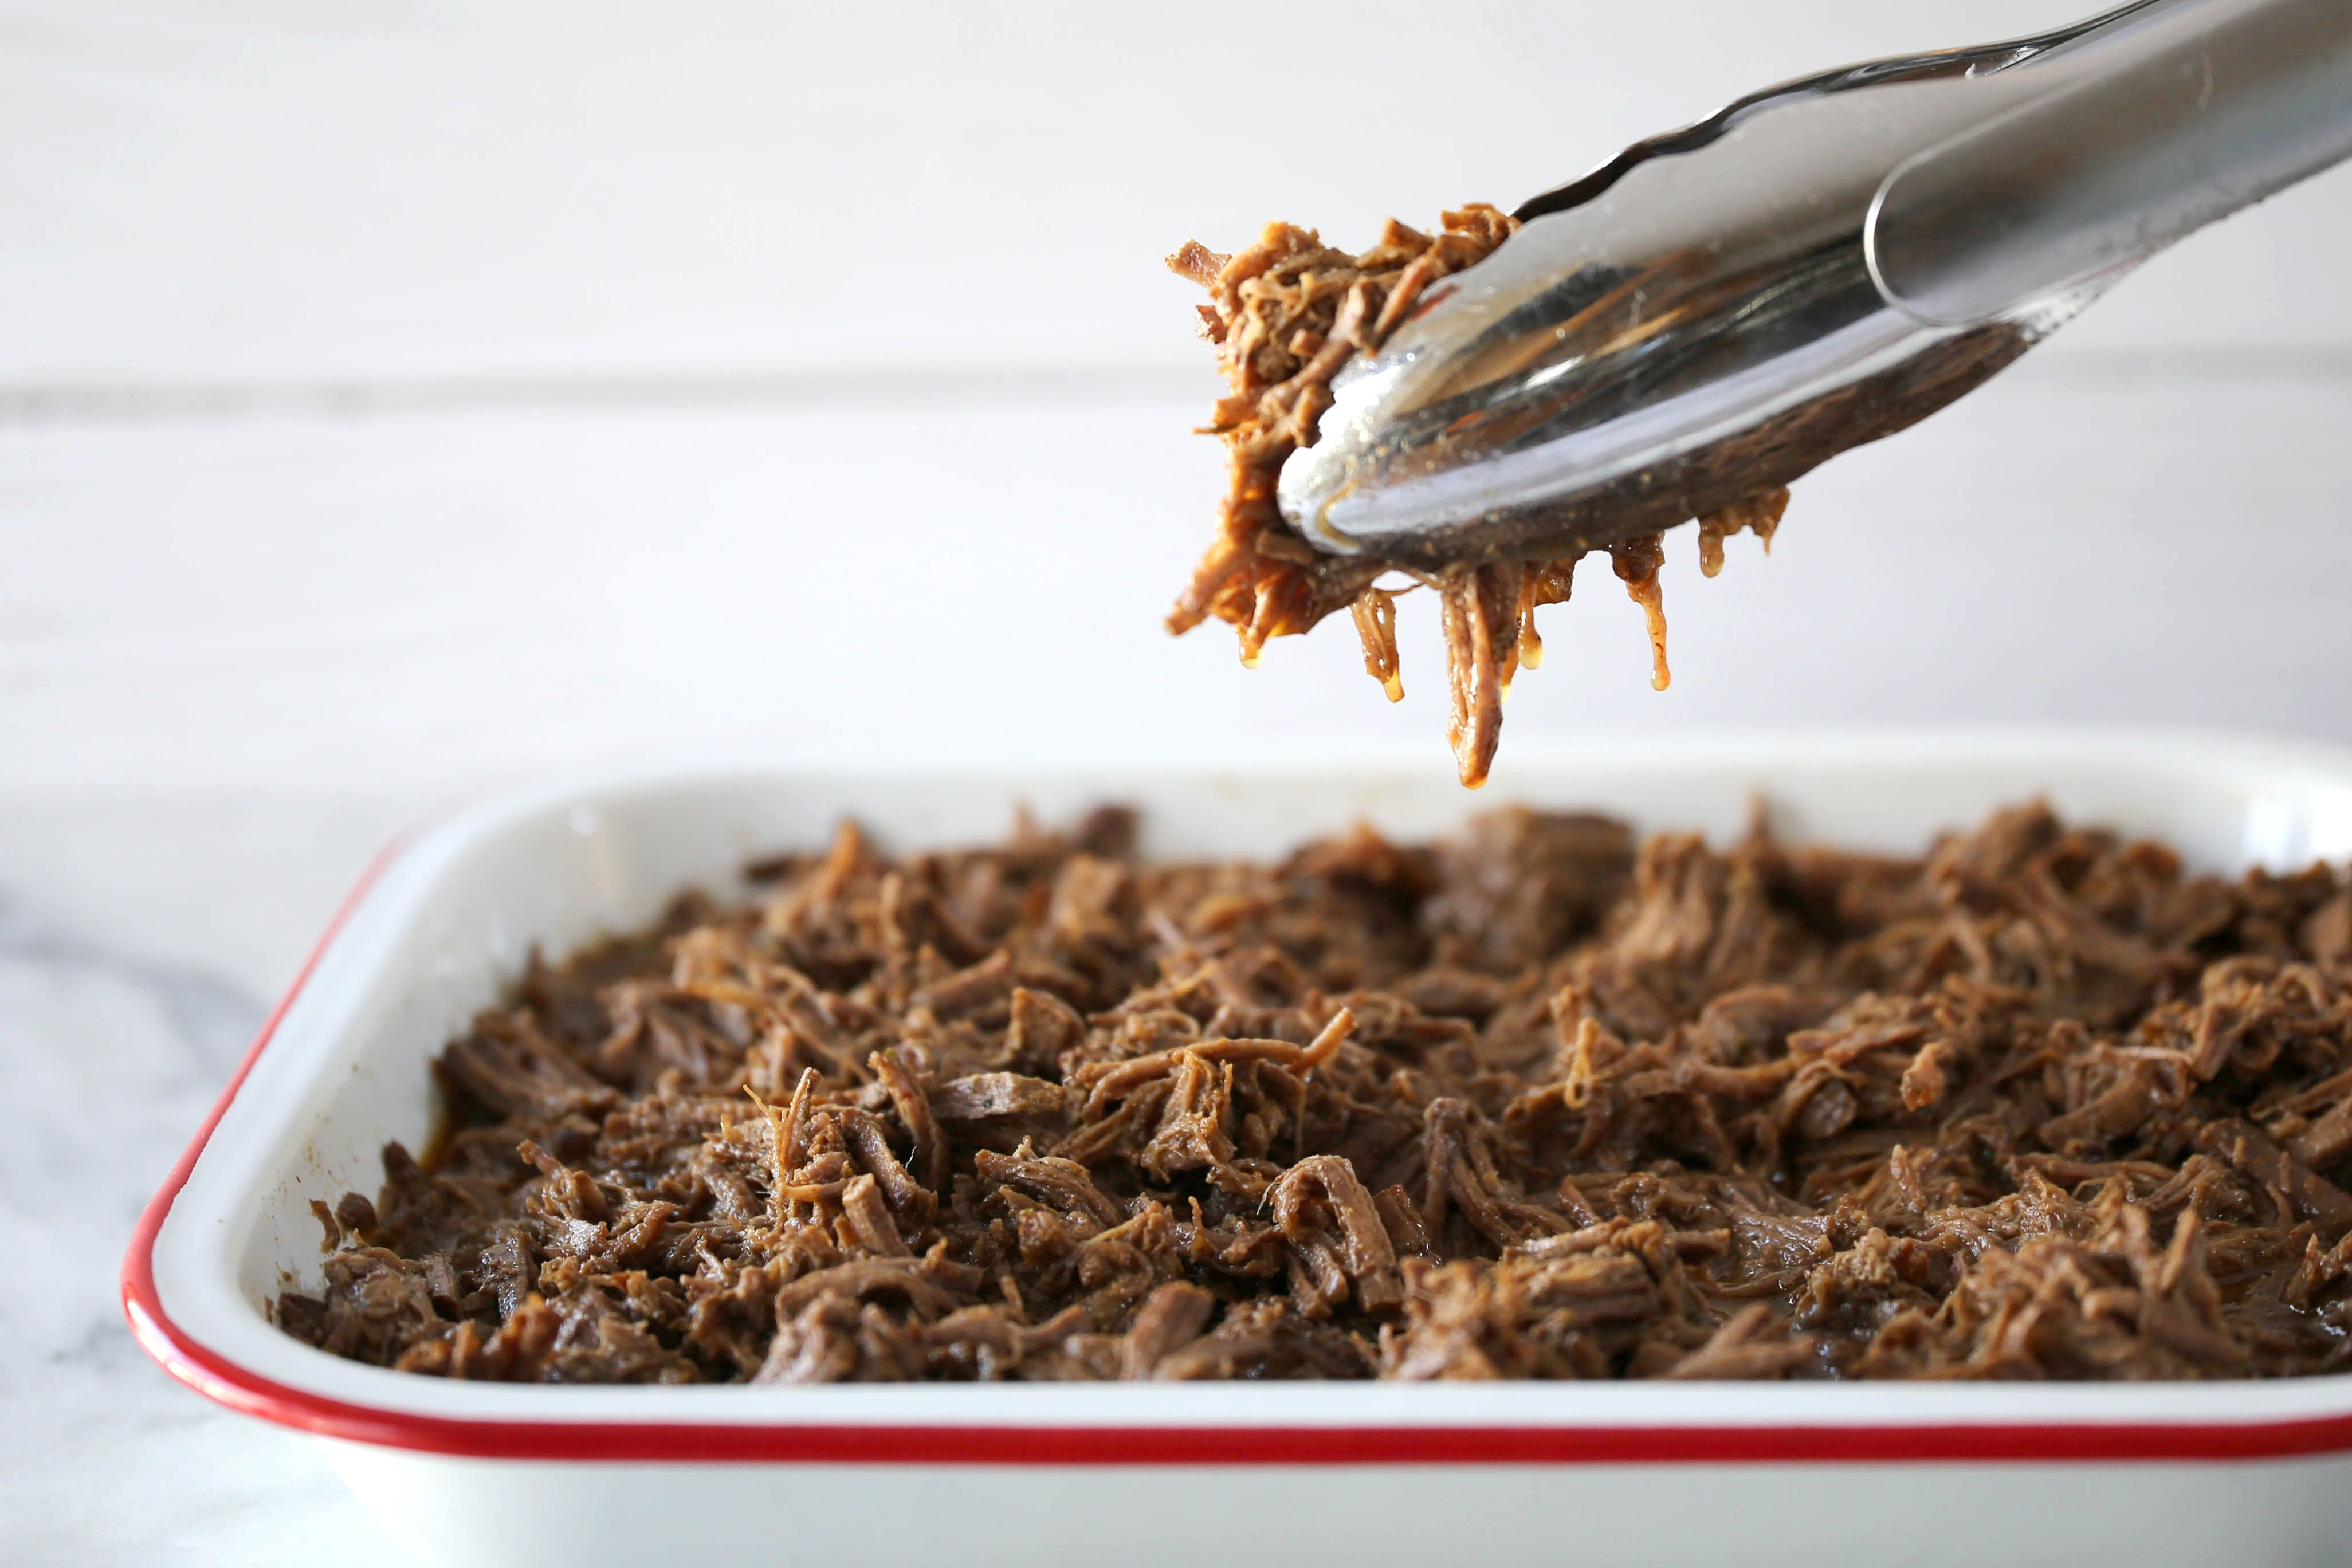 Shred the beef and mix it with the liquids.